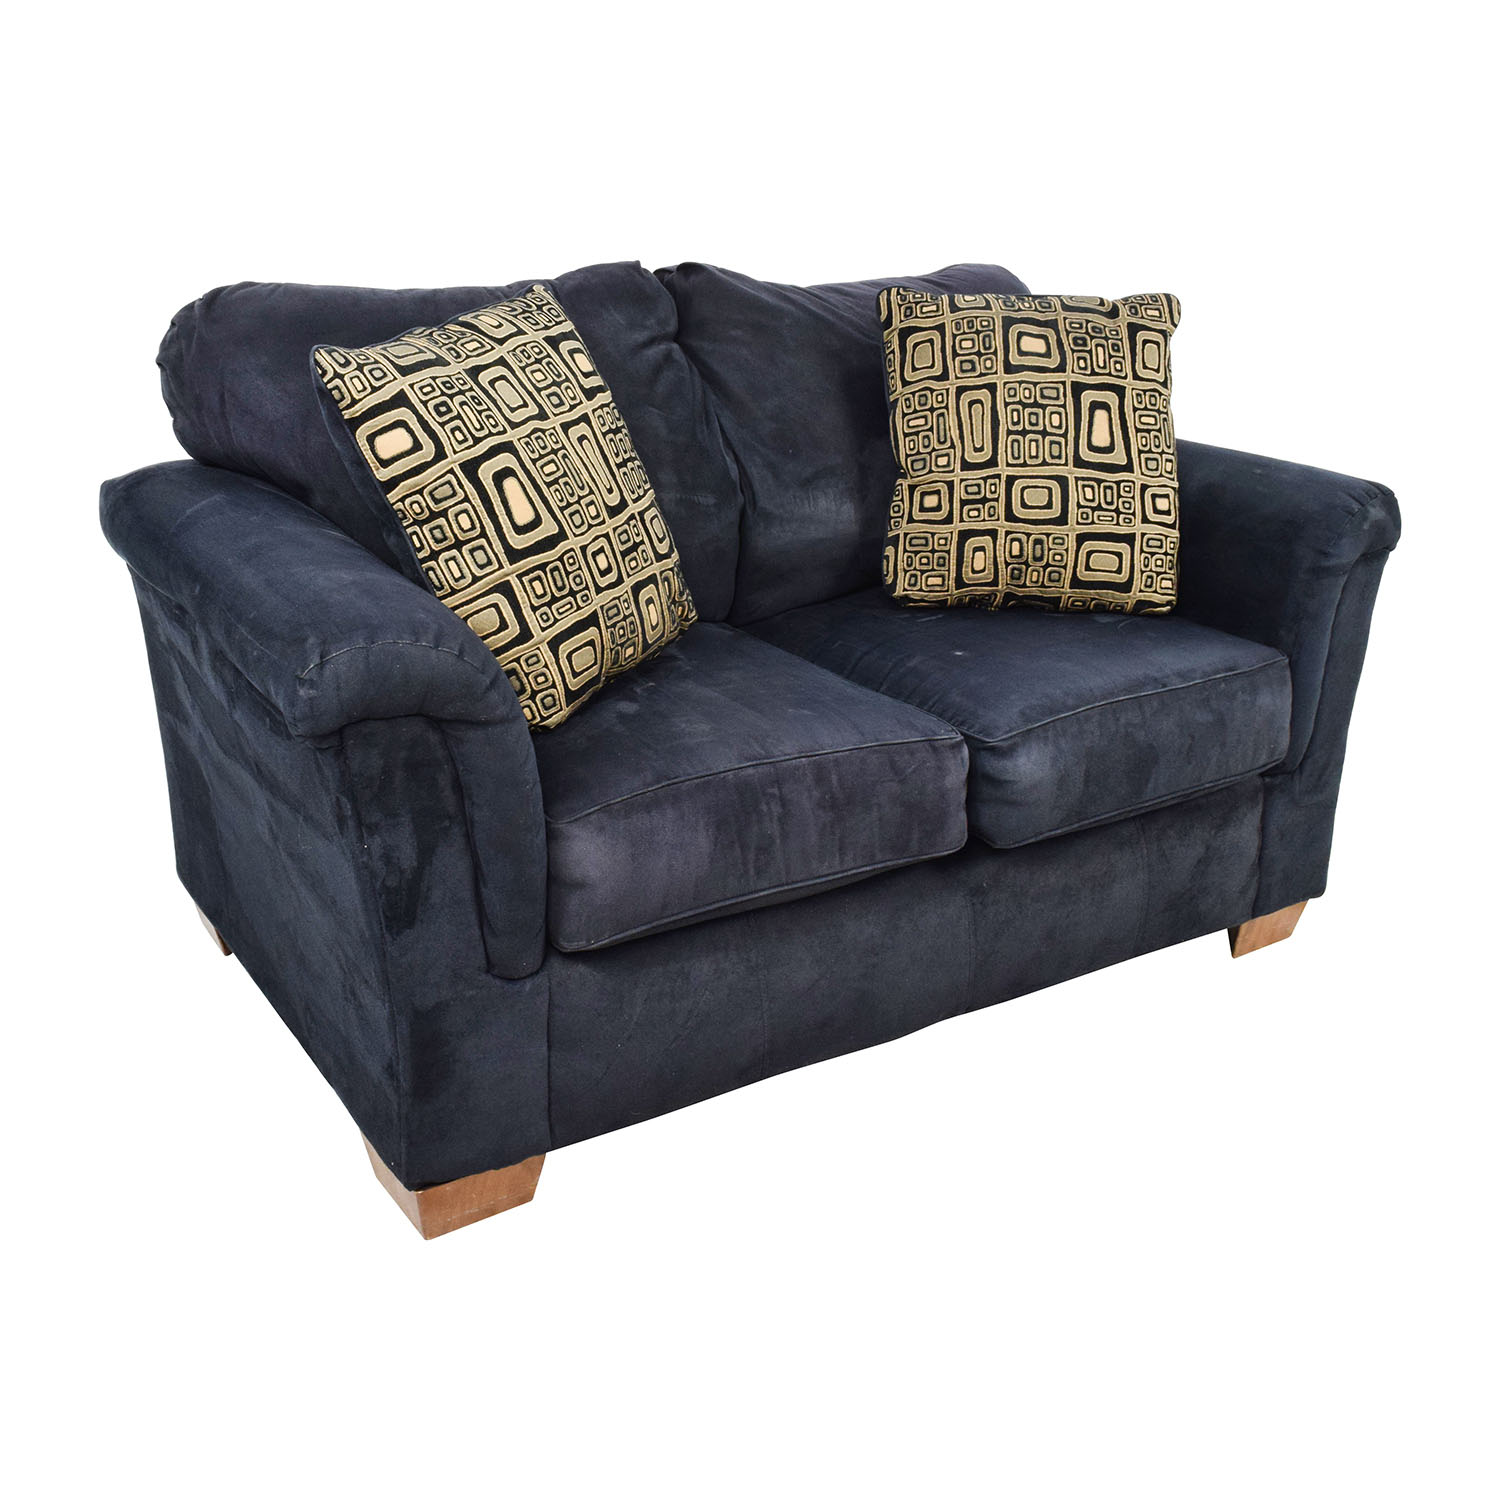 81 off ashley furniture ashley furniture black loveseat sofas Ashley couch and loveseat